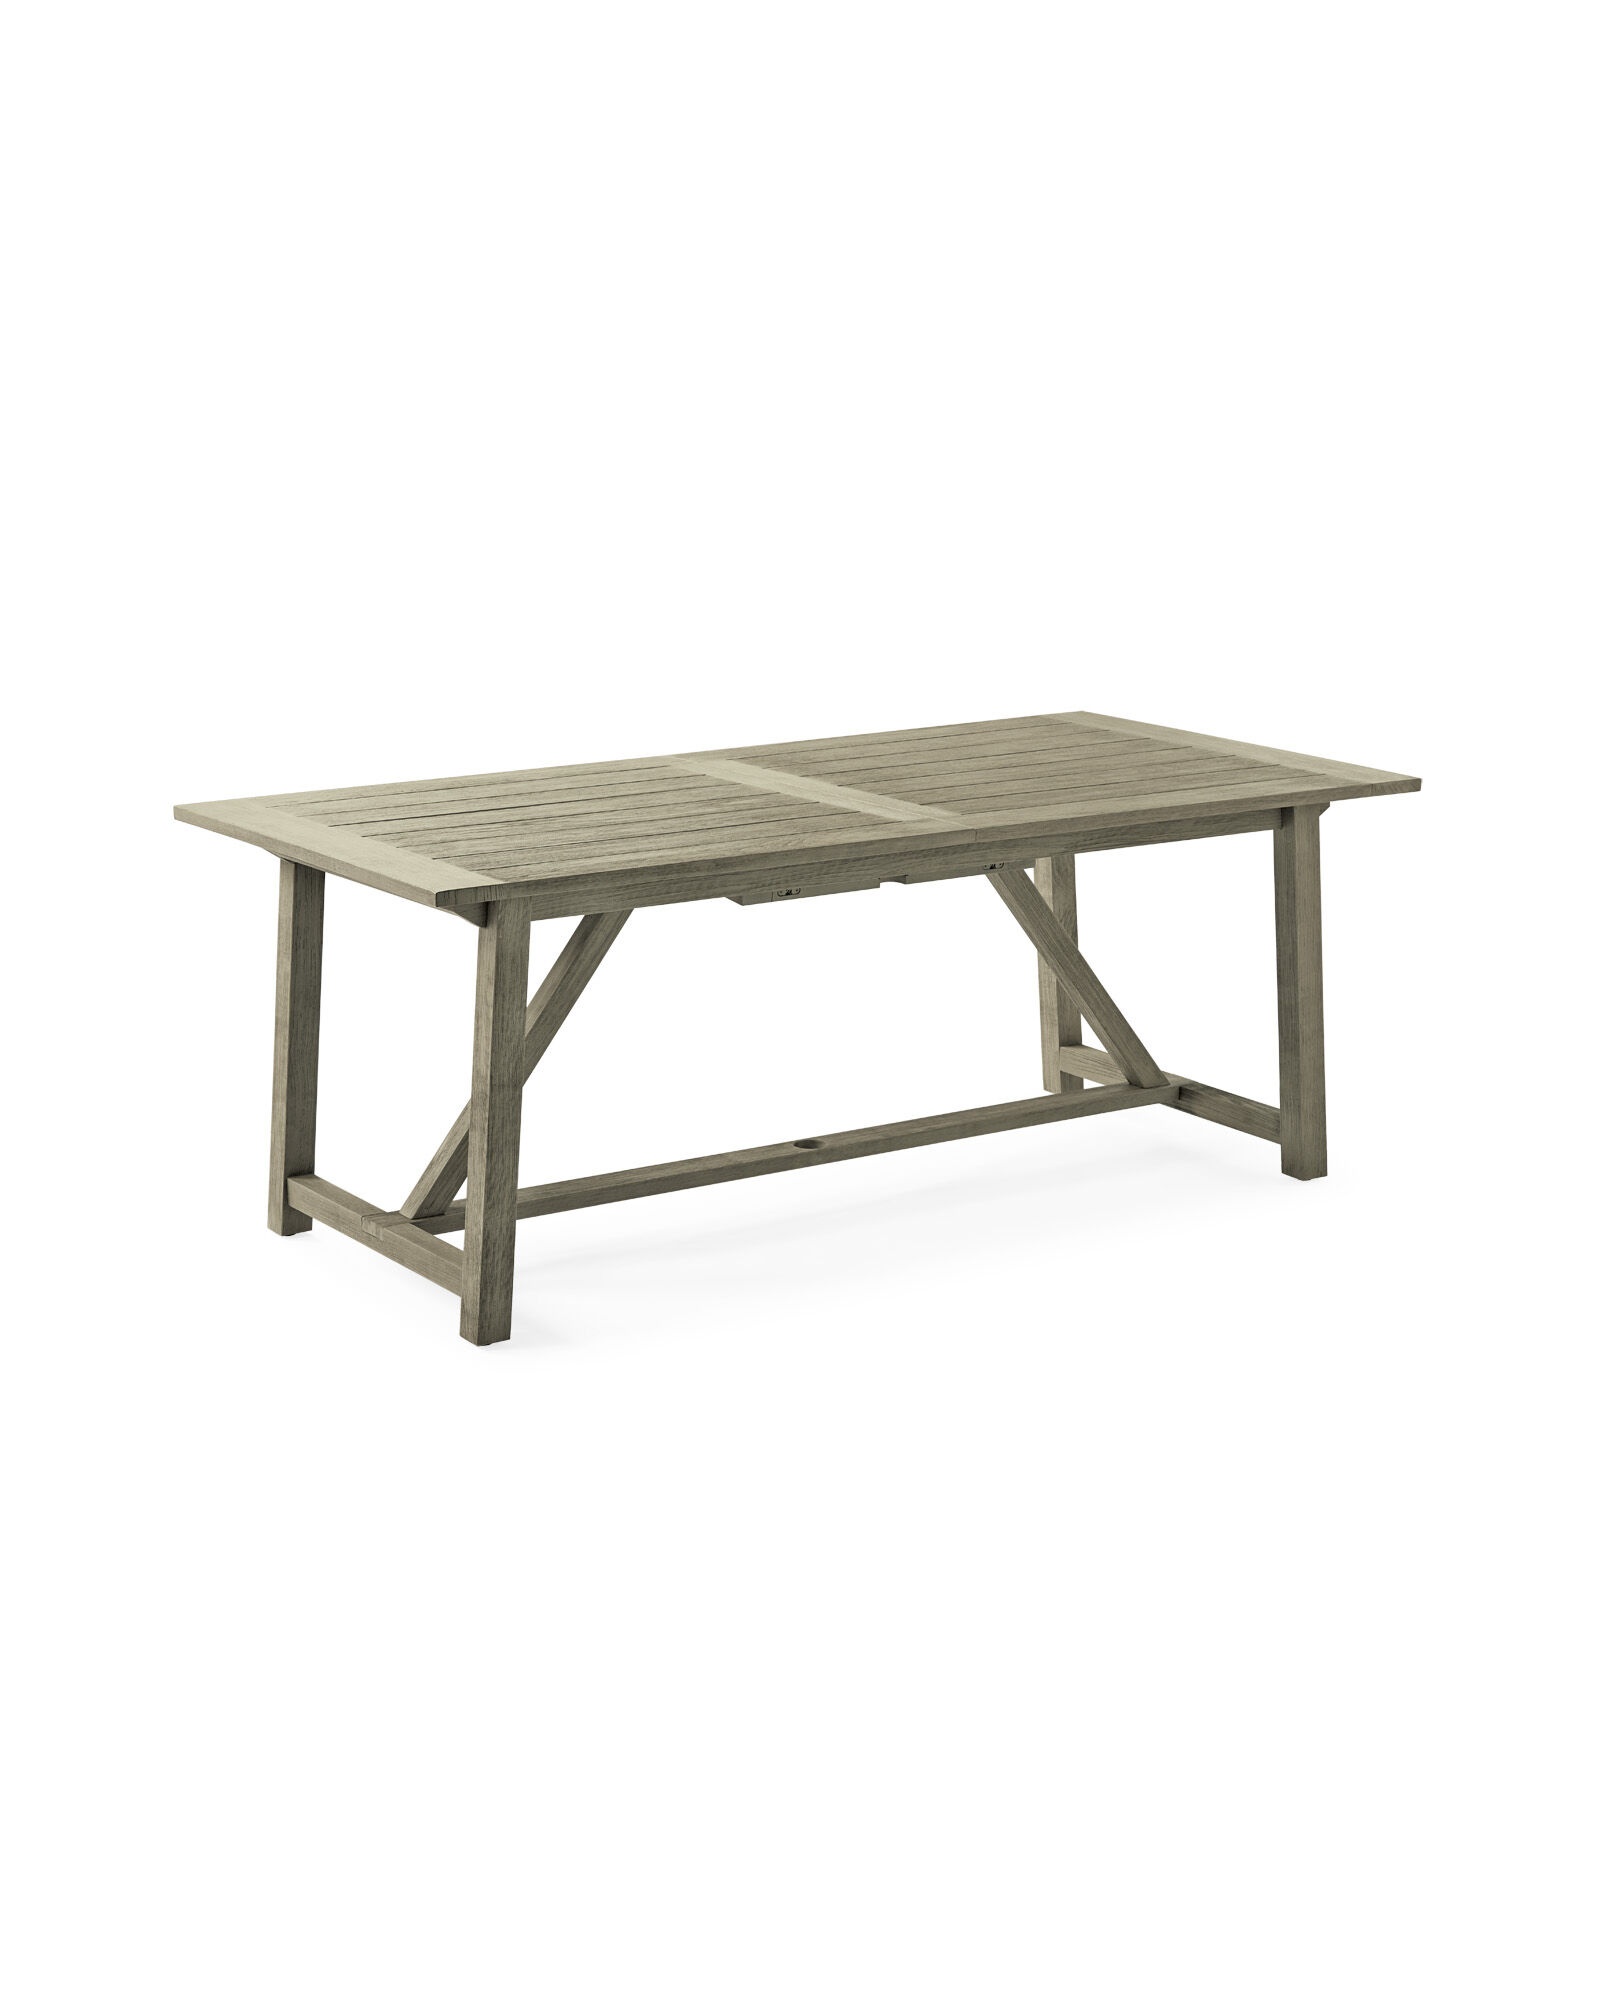 Crosby Teak Expandable Dining Table – Vintage Grey,